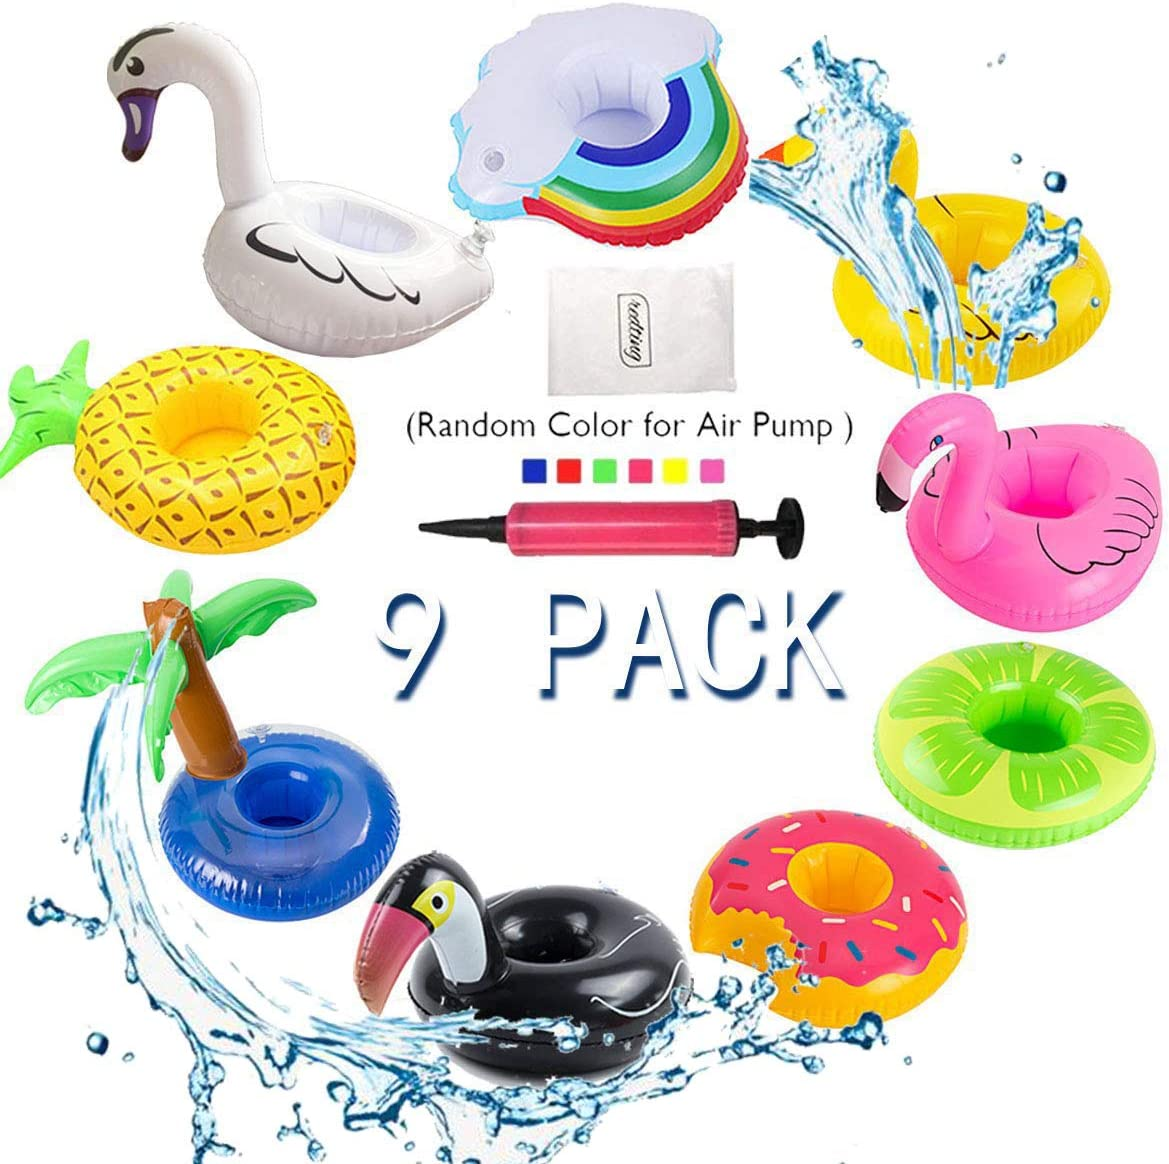 redting Inflatable Drink Holder, Drink Pool Floats Cup Holder Floats Inflatable Floating Coasters for Pool Party (9 Pack)